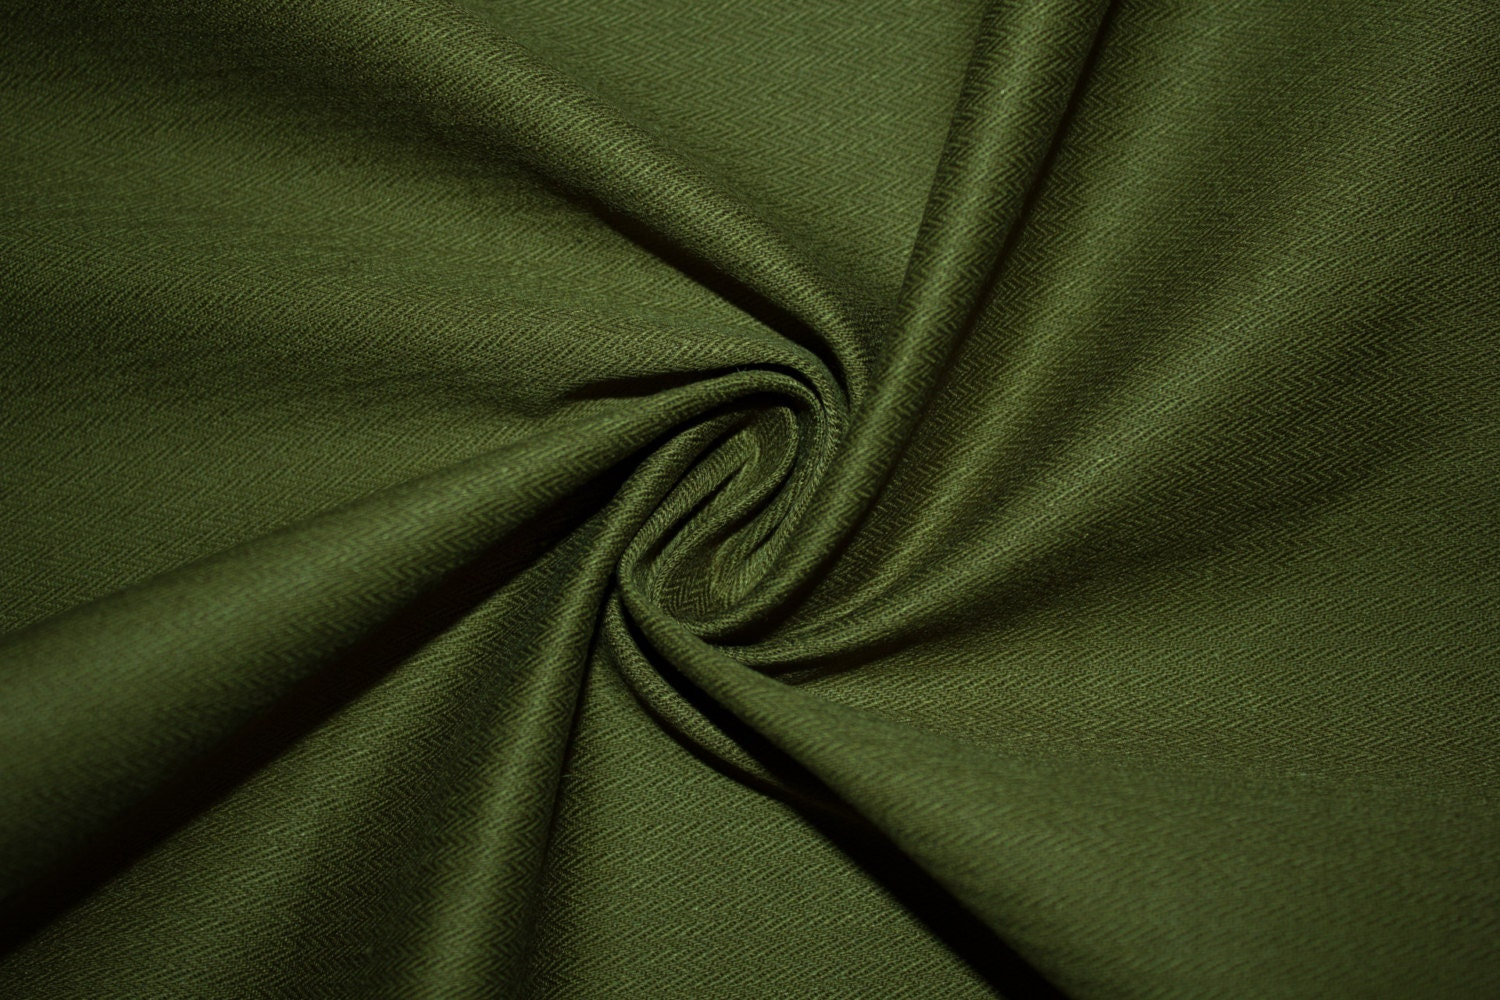 Olive stretch twill 7 herringbone cotton bottom weight for Apparel fabric